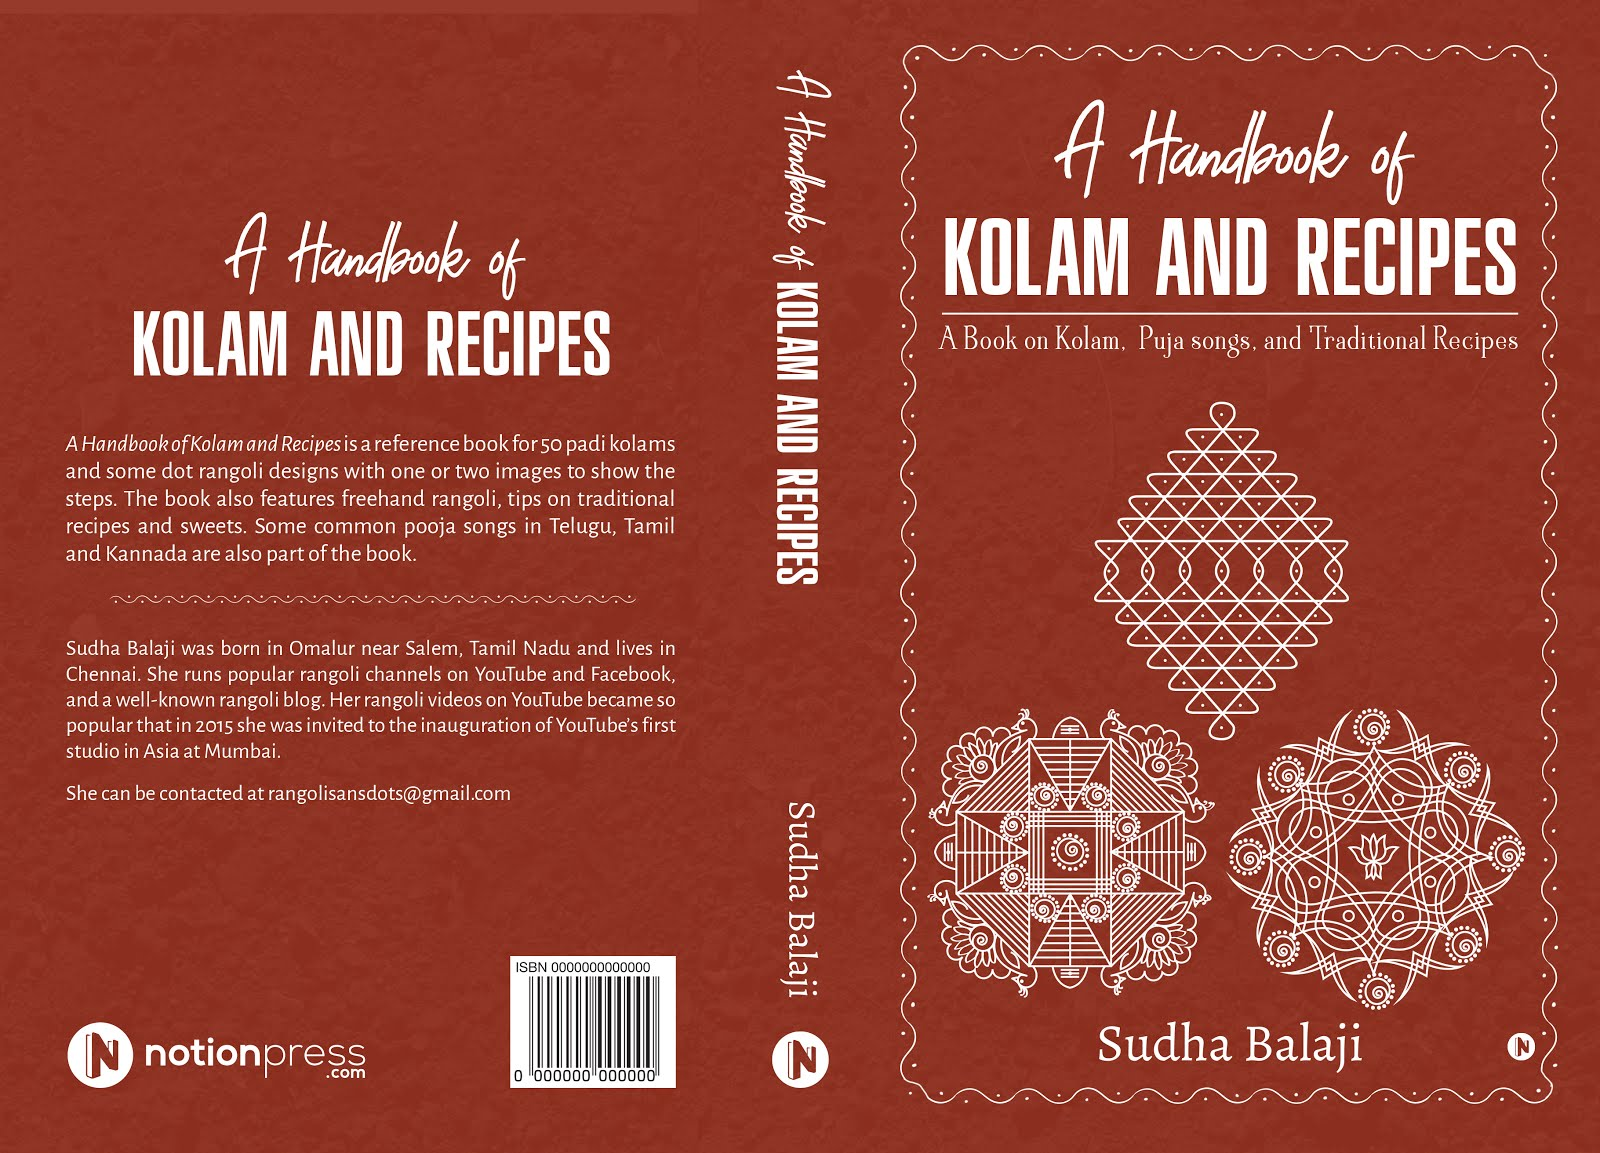 Purchase my kolam, recipes BOOK